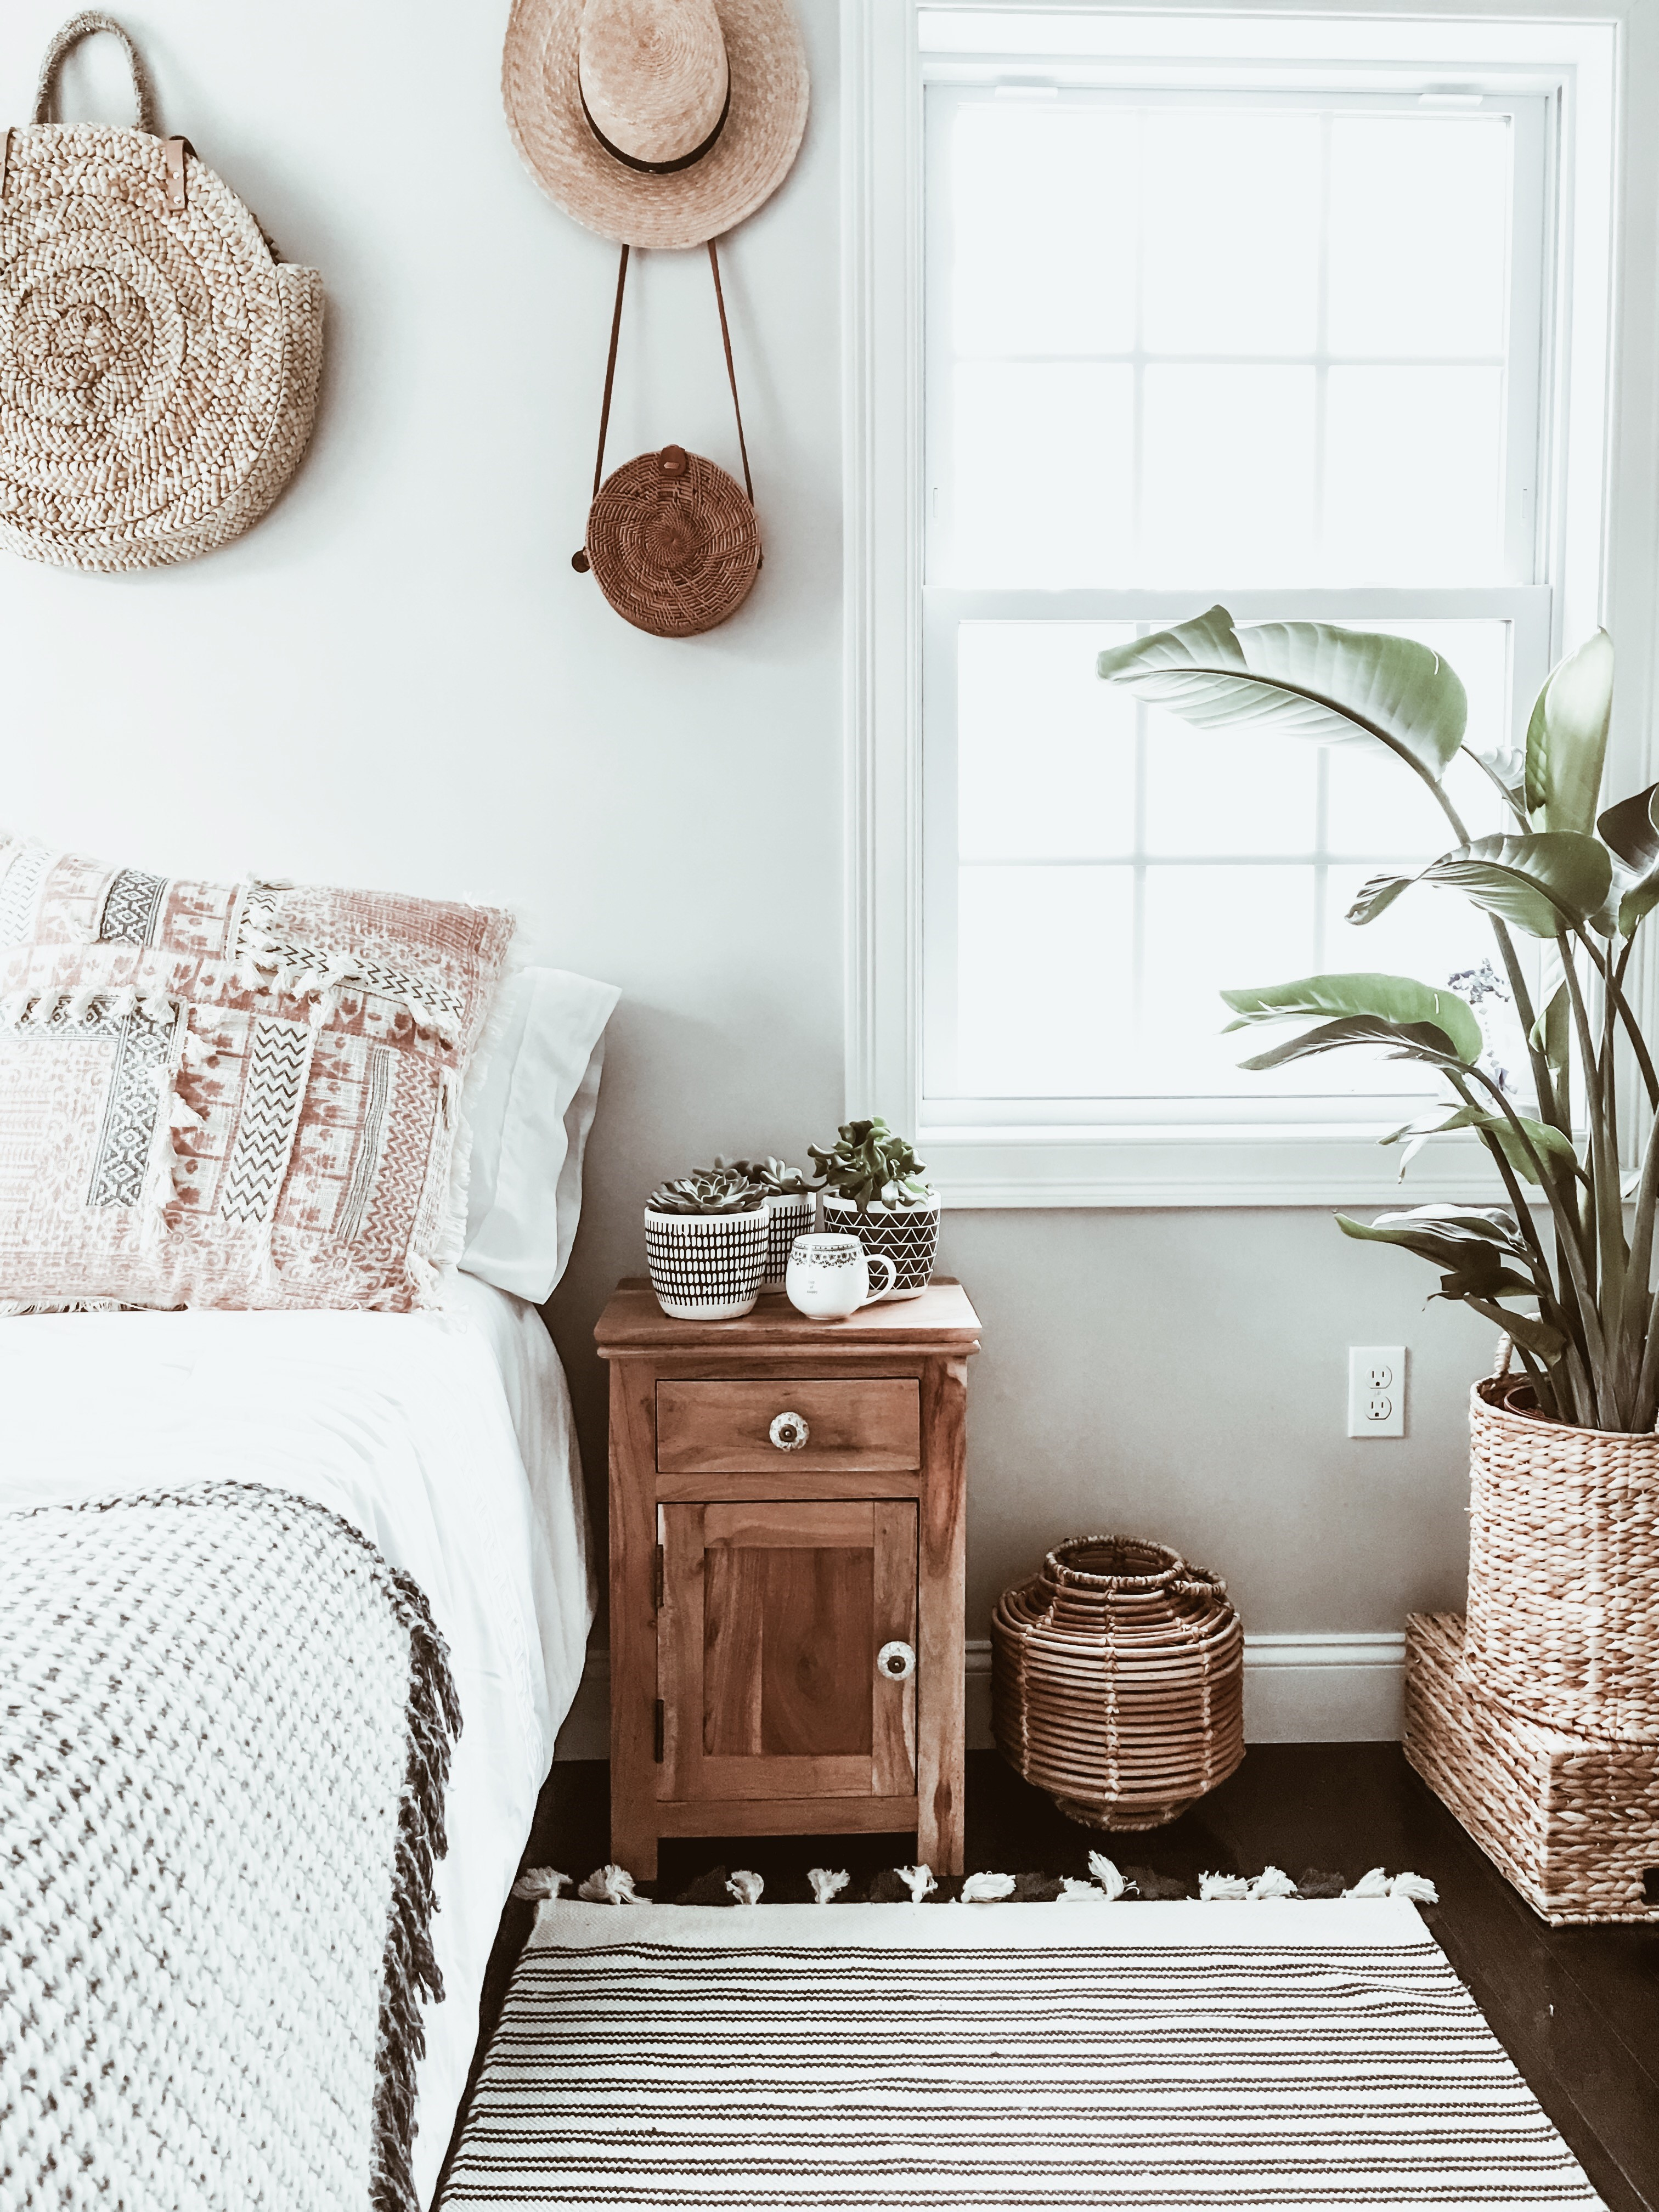 Home Decor Edition: Boho Chic Bedroom Makeover - WANDER x LUXE